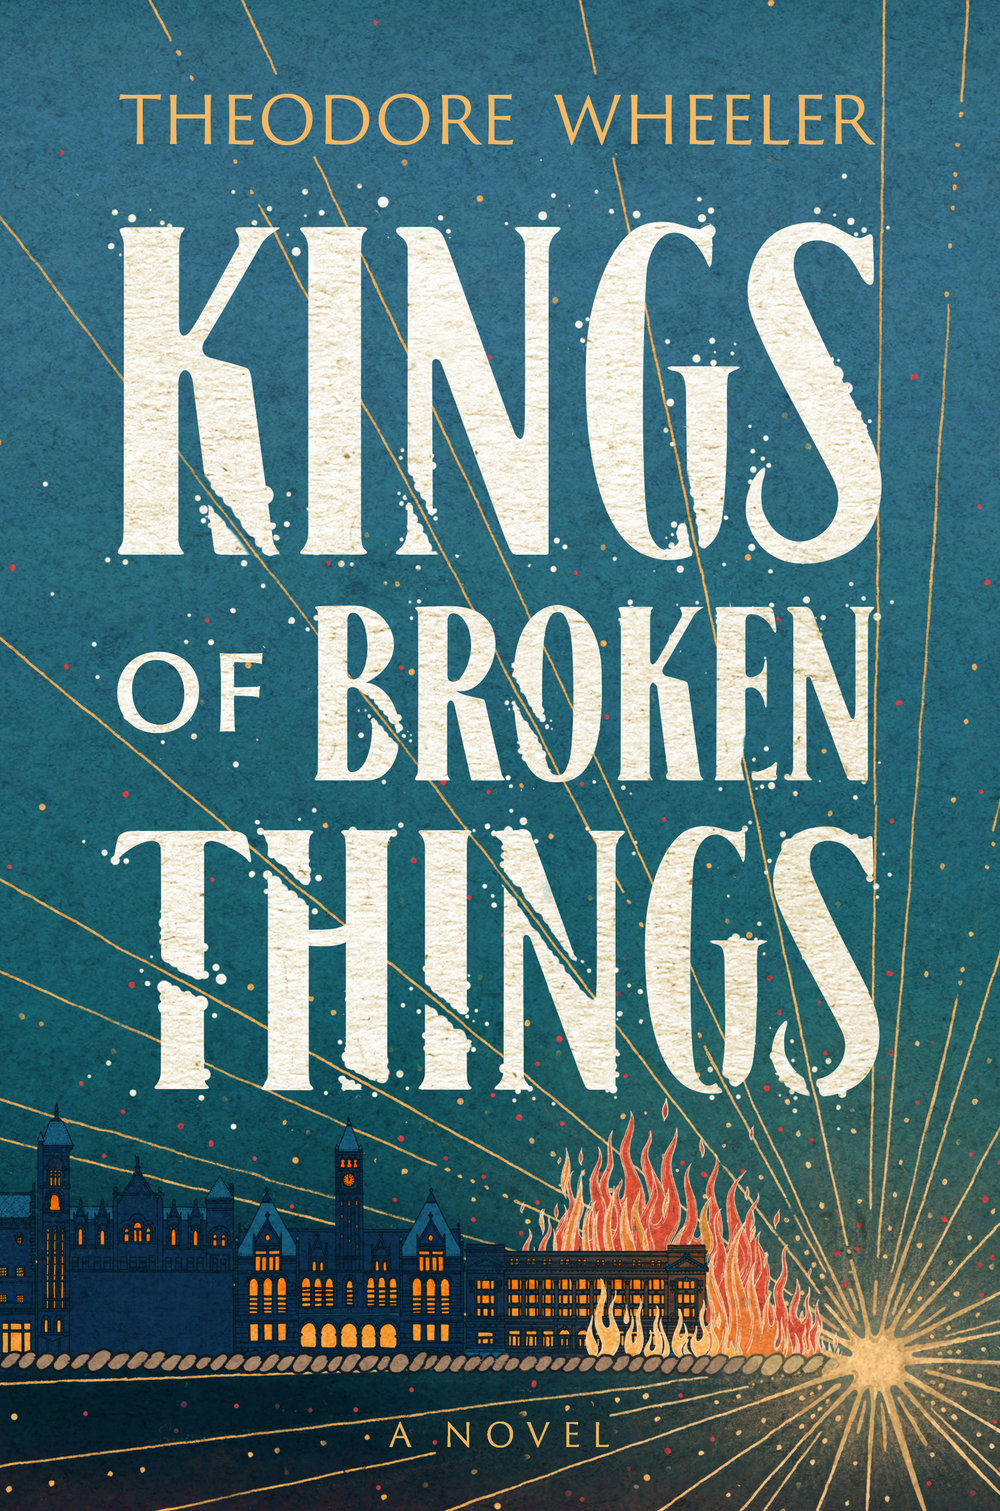 With characters depicted in precise detail and wide panorama—a kept-woman's parlor, a contentious interracial baseball game on the Fourth of July, and the tragic true events of the Omaha Race Riot of 1919— Kings of Broken Things  reveals the folly of human nature in an era of astonishing ambition.   During the waning days of World War I, three lost souls find themselves adrift in Omaha, Nebraska, at a time of unprecedented nationalism, xenophobia, and political corruption. Adolescent European refugee Karel Miihlstein's life is transformed after neighborhood boys discover his prodigious natural talent for baseball. Jake Strauss, a young man with a violent past and desperate for a second chance, is drawn into a criminal underworld. Evie Chambers, a kept woman, is trying to make ends meet and looking every which way to escape her cheerless existence.  As wounded soldiers return from the front and black migrant workers move north in search of economic opportunity, the immigrant wards of Omaha become a tinderbox of racial resentment stoked by unscrupulous politicians. Punctuated by an unspeakable act of mob violence, the fates of Karel, Jake, and Evie will become inexorably entangled with the schemes of a ruthless political boss whose will to power knows no bounds.  Written in the tradition of Don DeLillo and Colum McCann, with a great debt to Ralph Ellison, Theodore Wheeler's debut novel  Kings of Broken Things  is a panoramic view of a city on the brink of implosion during the course of this summer of strife.